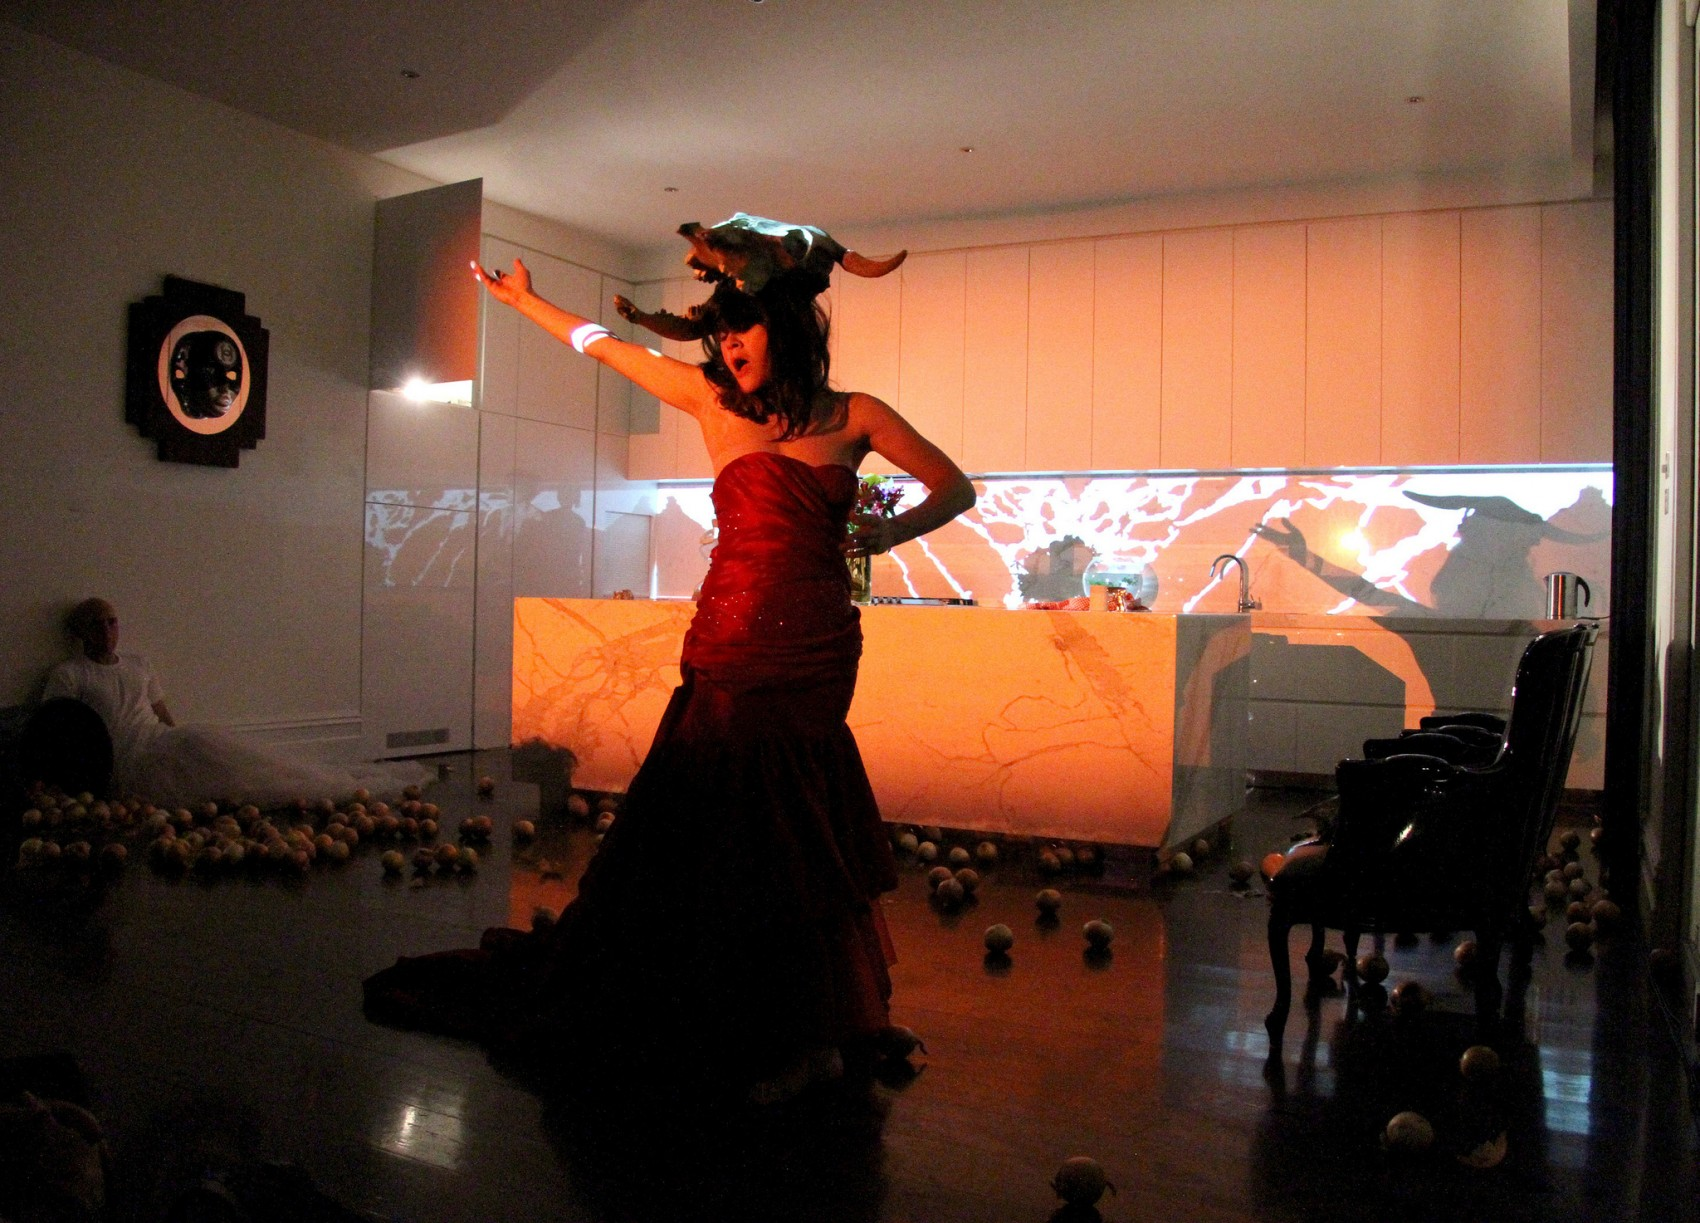 A woman wearing a red dress and an animal mask on her head strikes a dramatic pose in a kitchen where a man is slumped on the floor against a wall